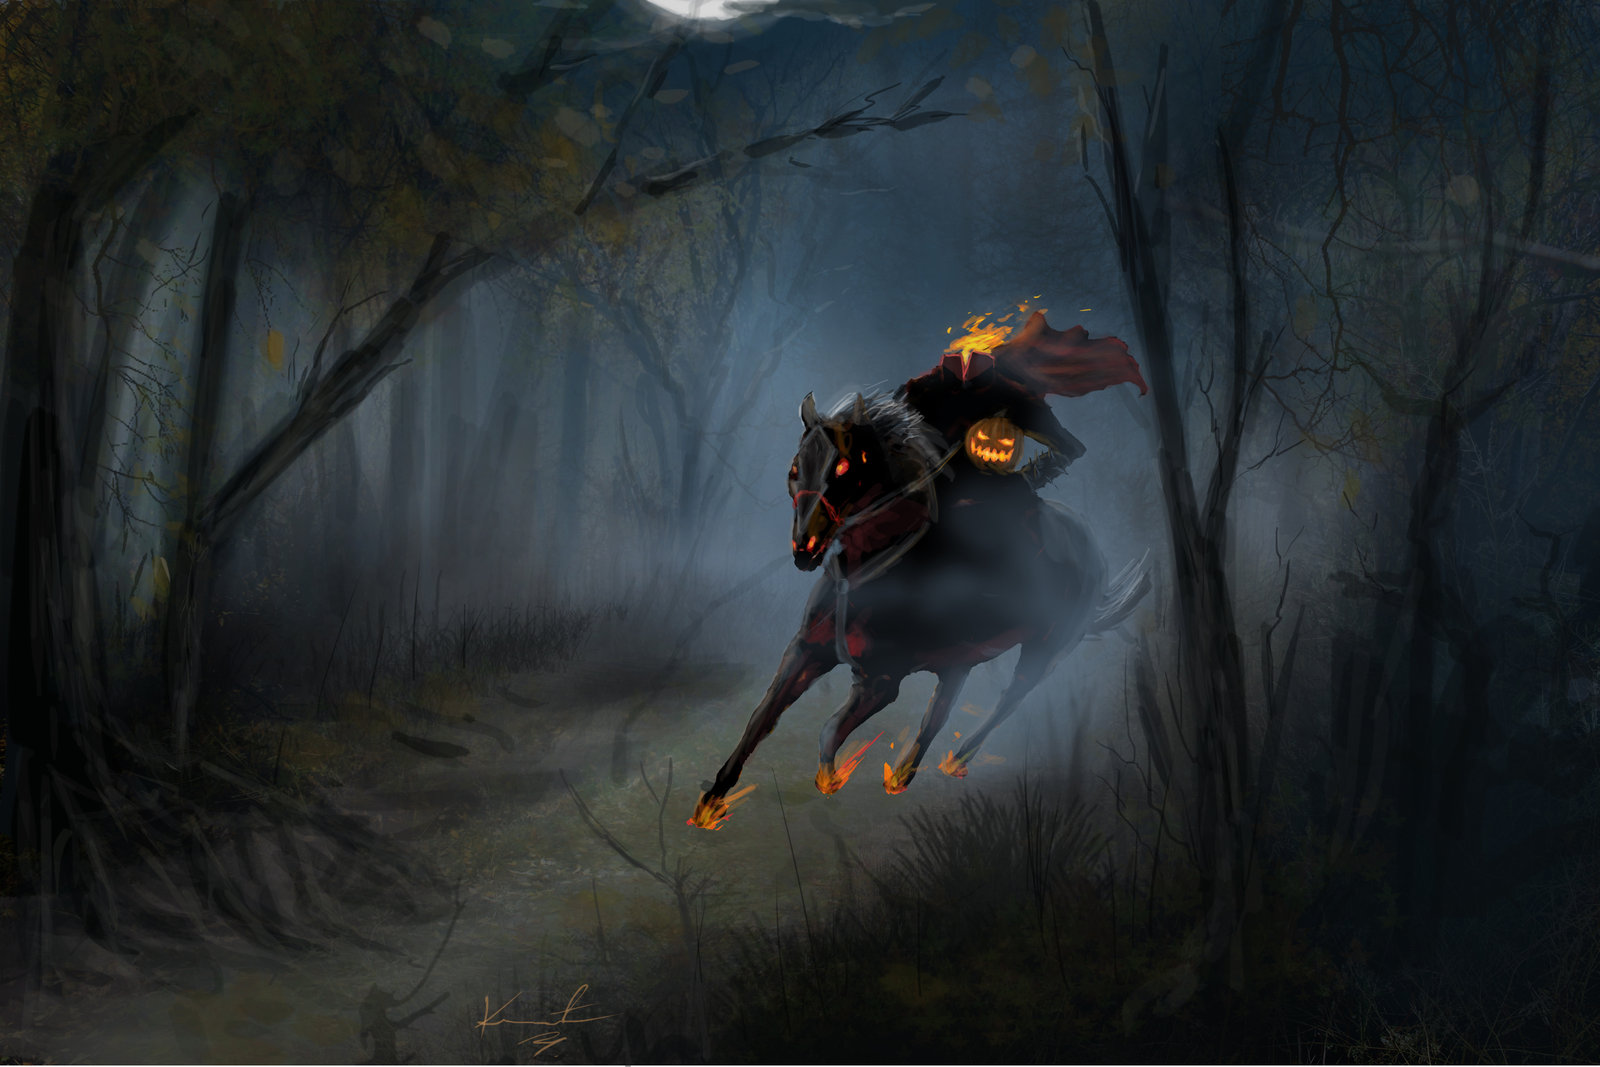 1000+ images about The Headless Horseman on Pinterest | Headless horseman